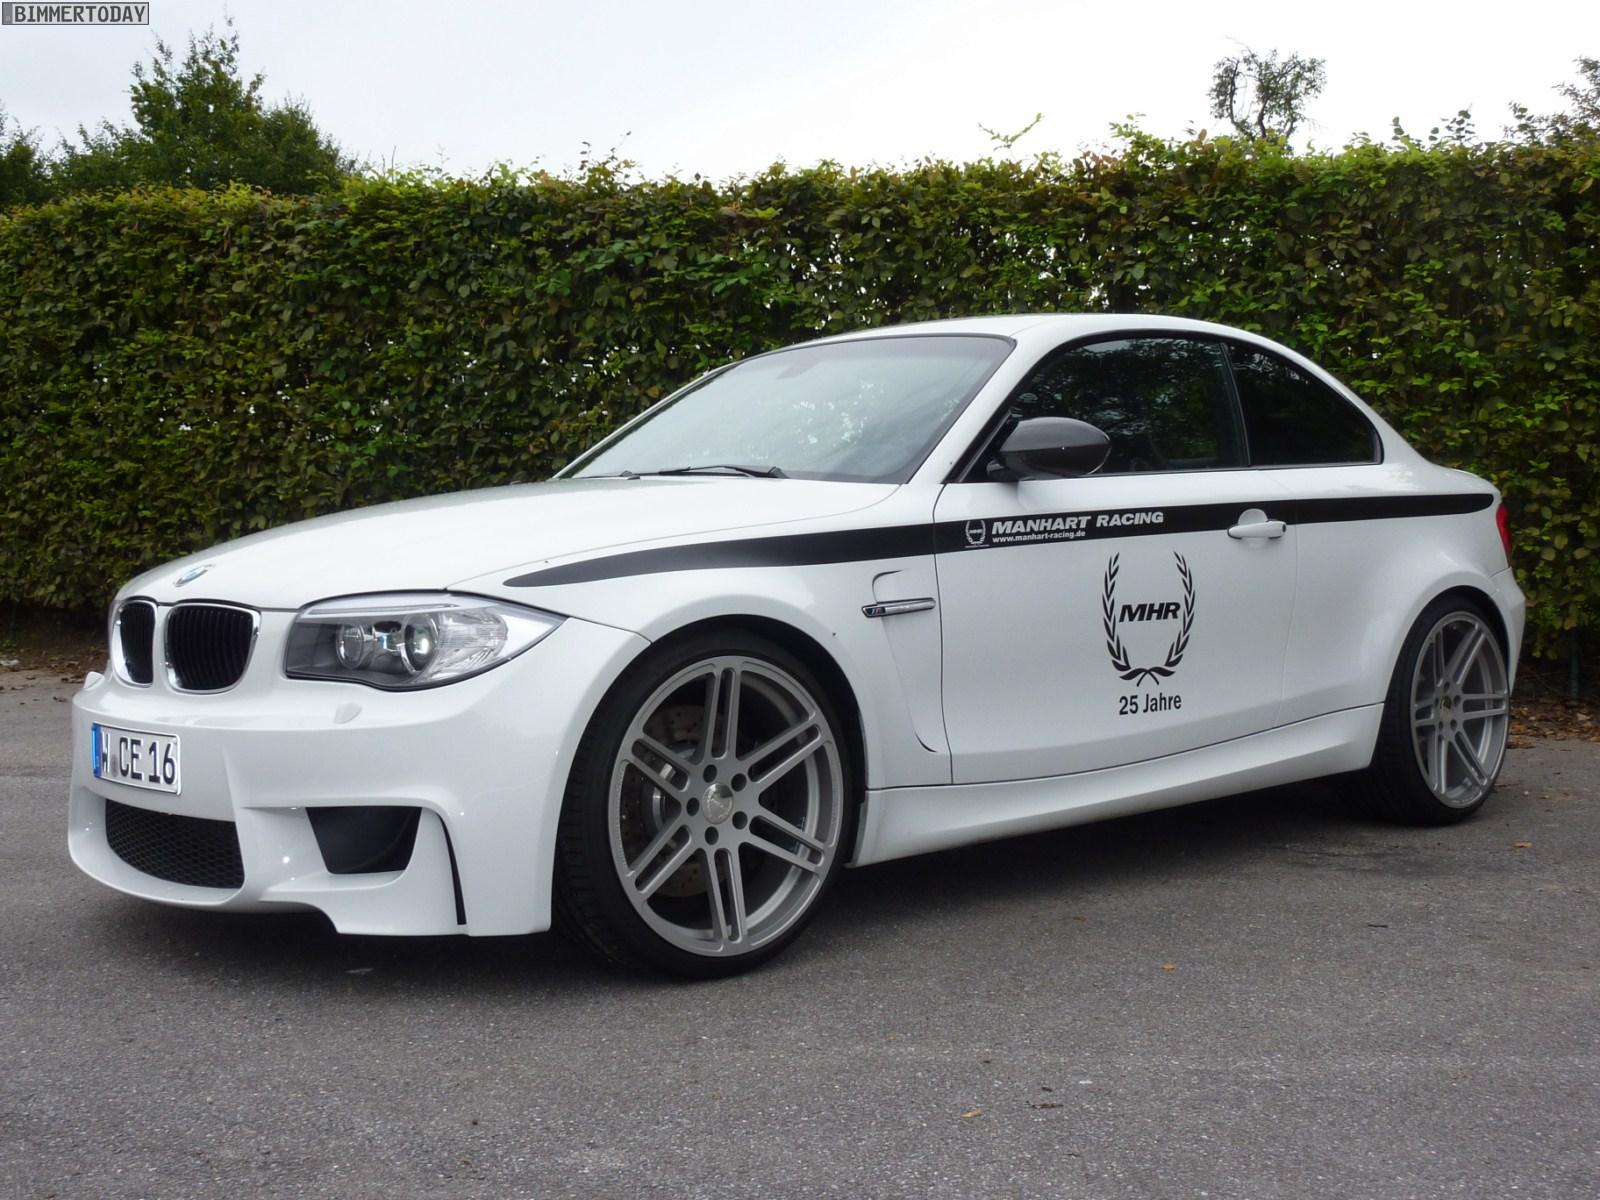 2012 bmw 1 series m coupe by manhart racing top speed. Black Bedroom Furniture Sets. Home Design Ideas